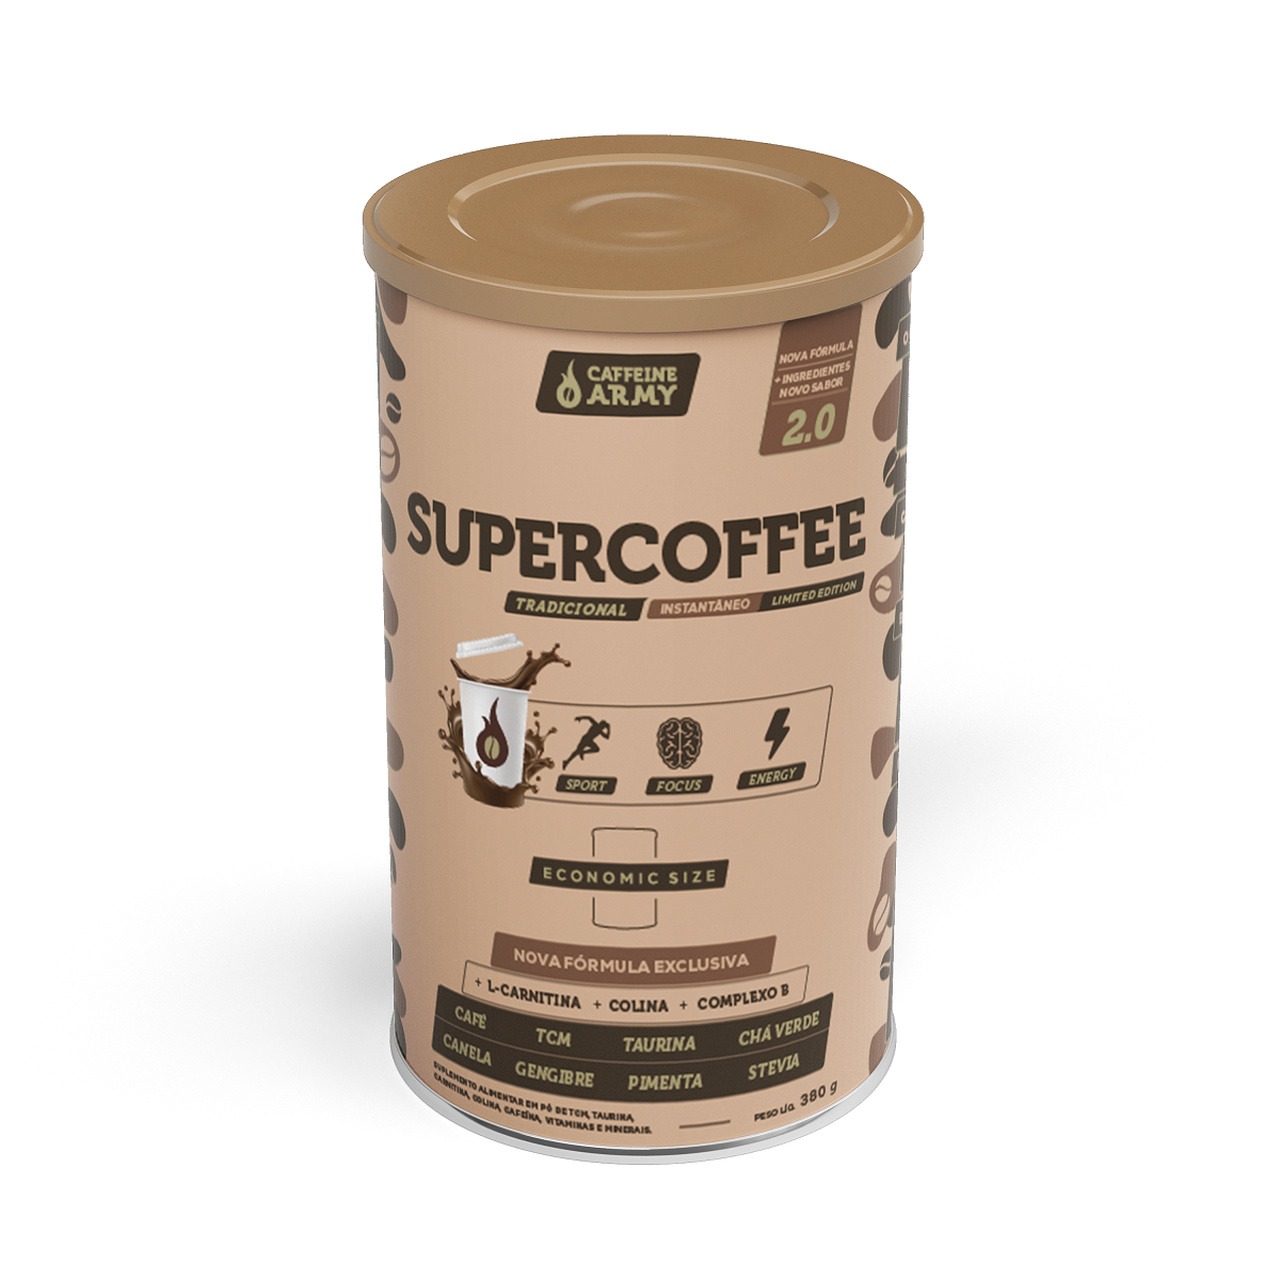 SUPERCOFFEE 2.0 ECONOMIC SIZE 380G